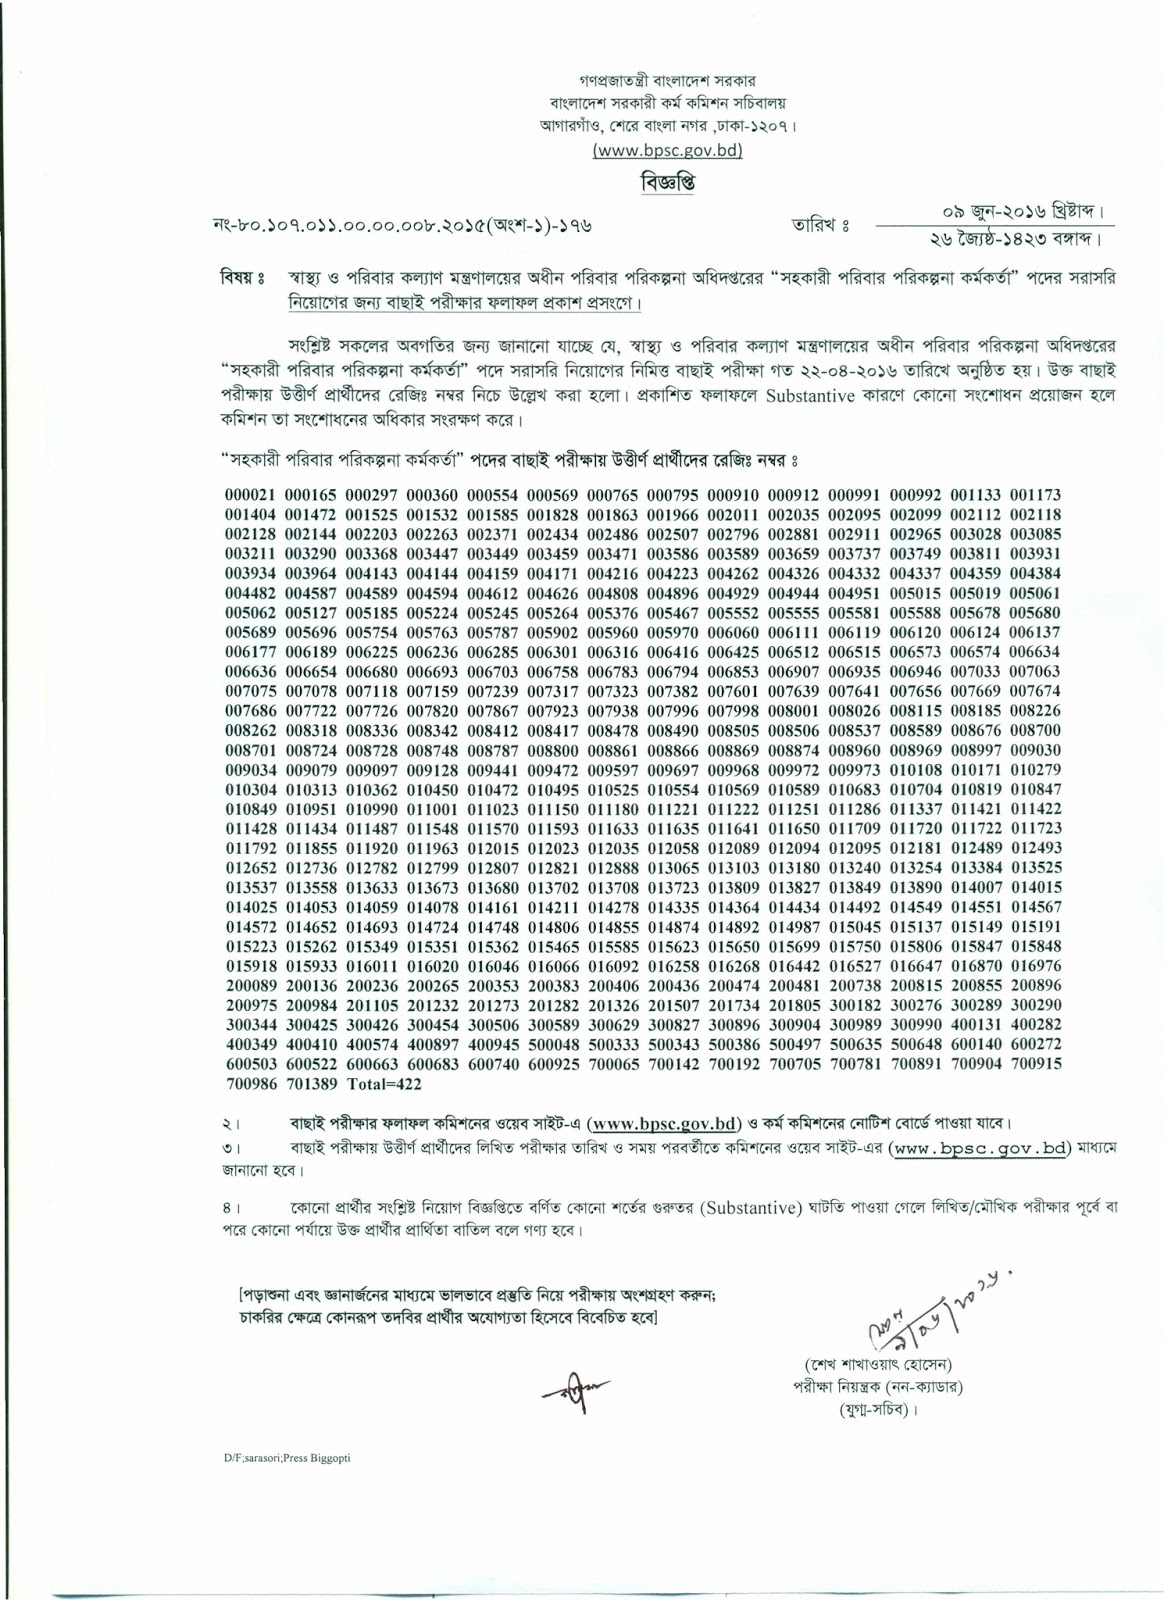 Assistant Family Planning Officer Result 2016 by BPSC - BD Results 24